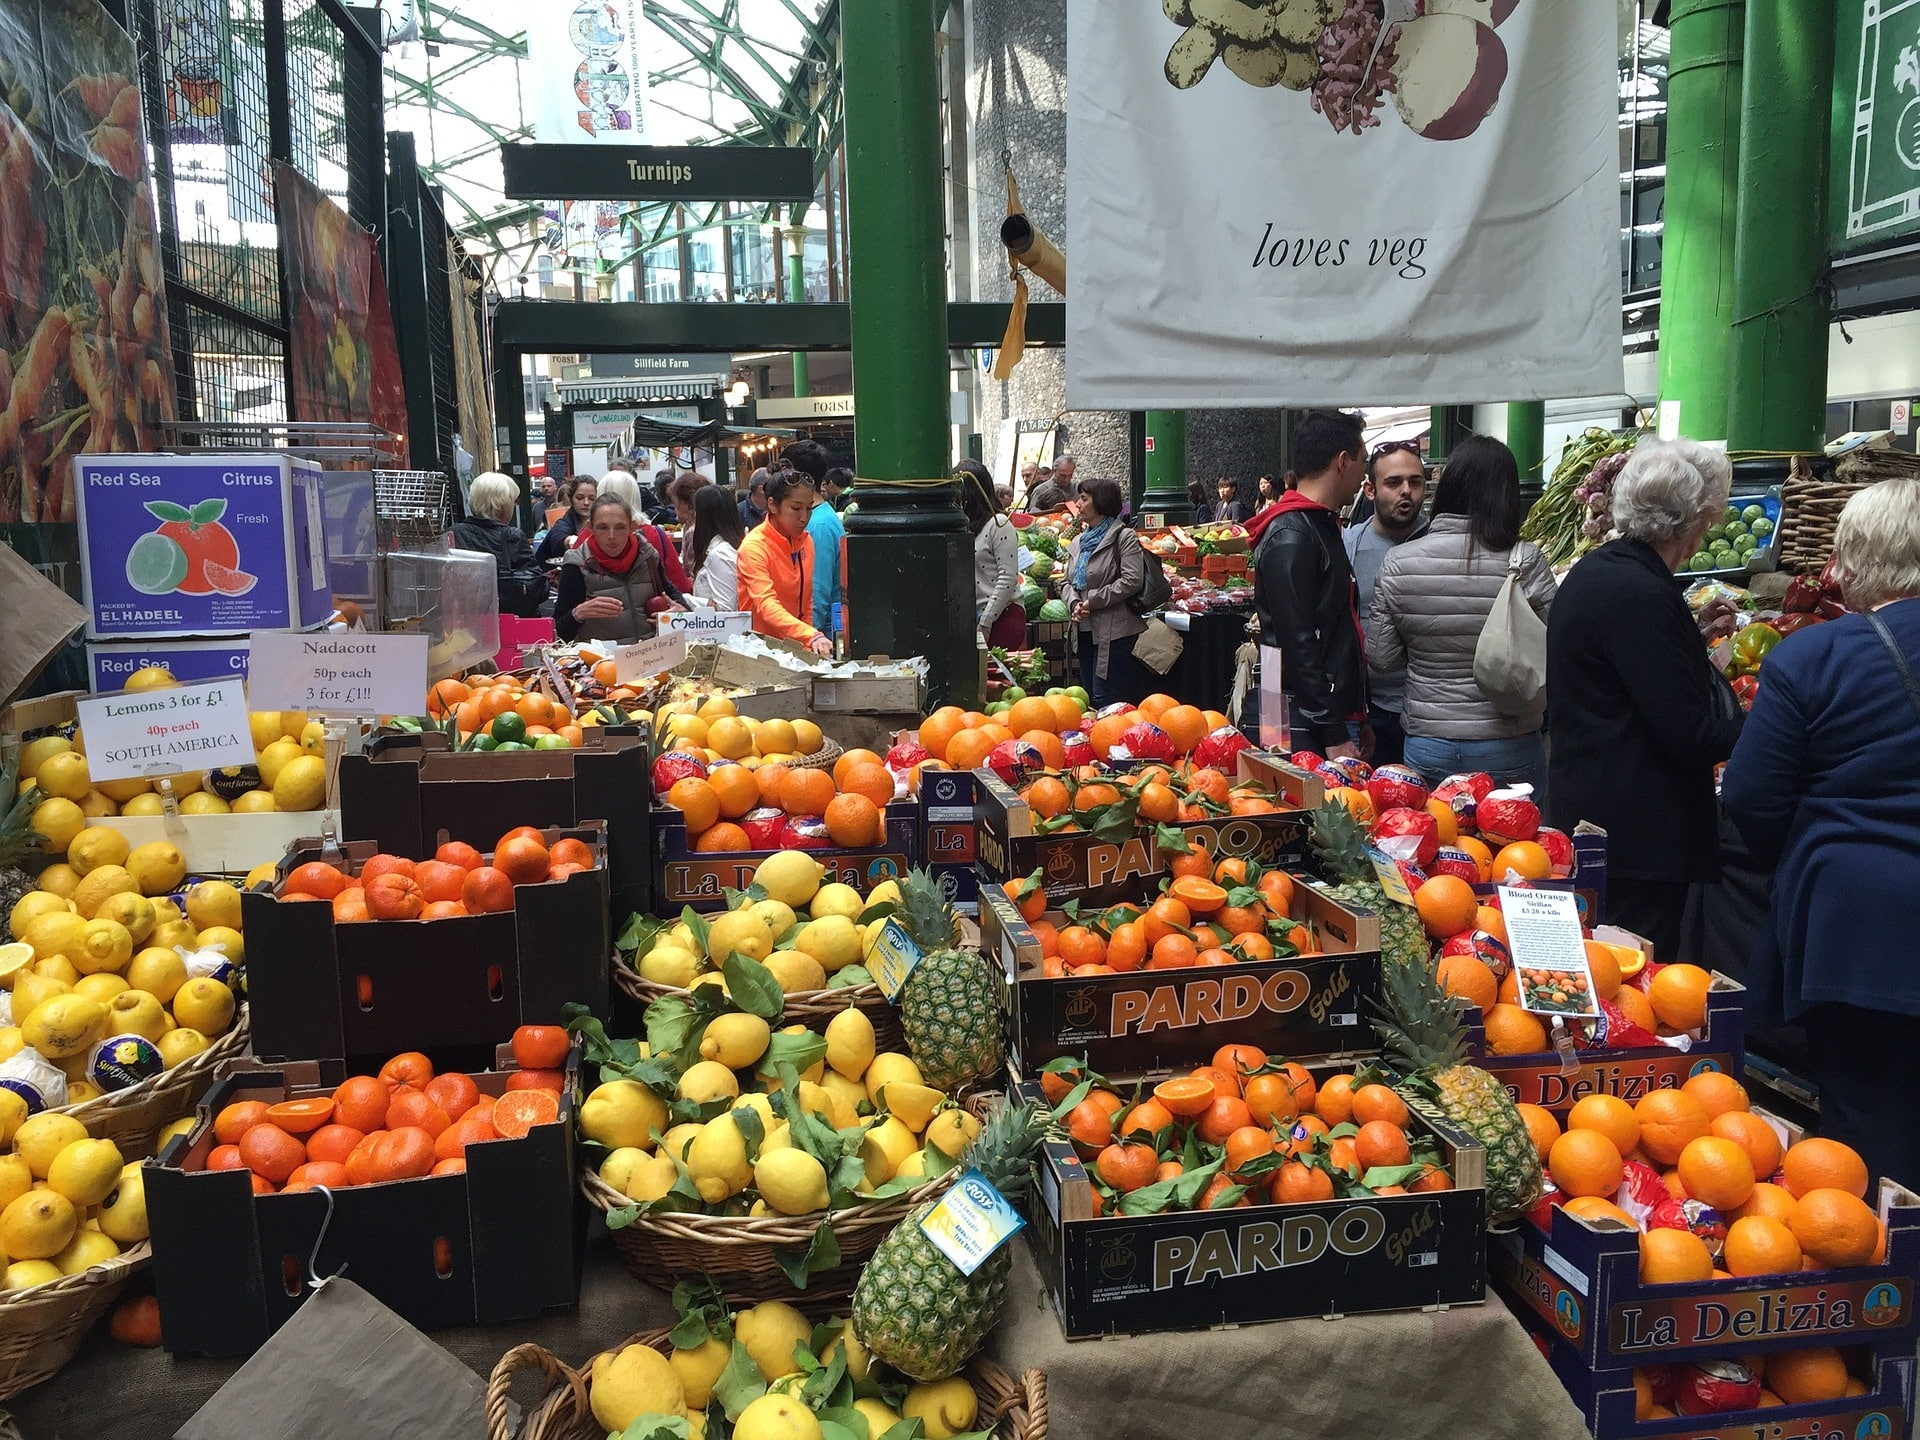 Checking out of the city's awesome markets is a great thing to do in London